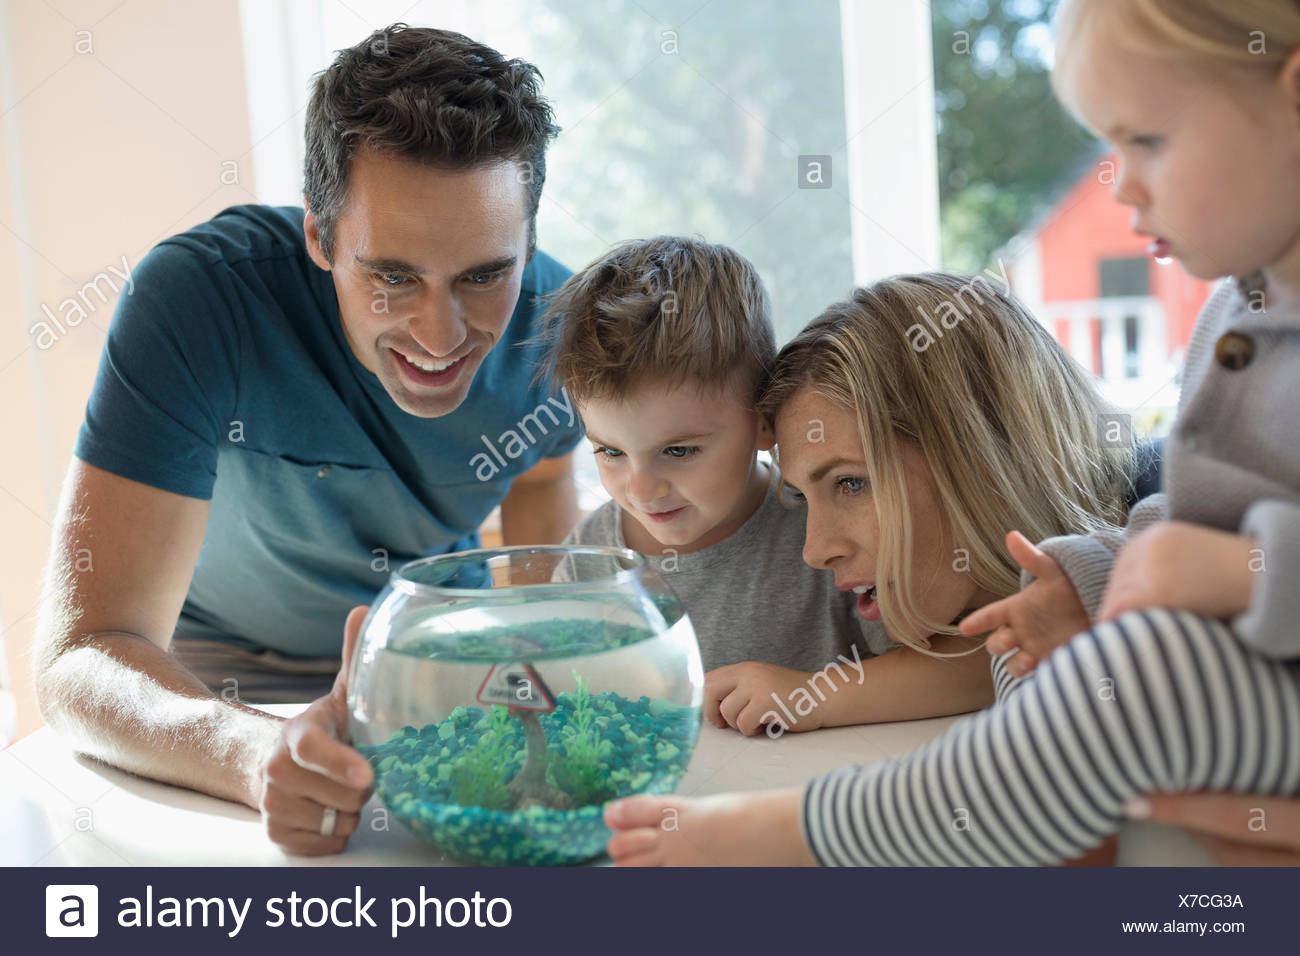 Young family watching goldfish in bowl - Stock Image